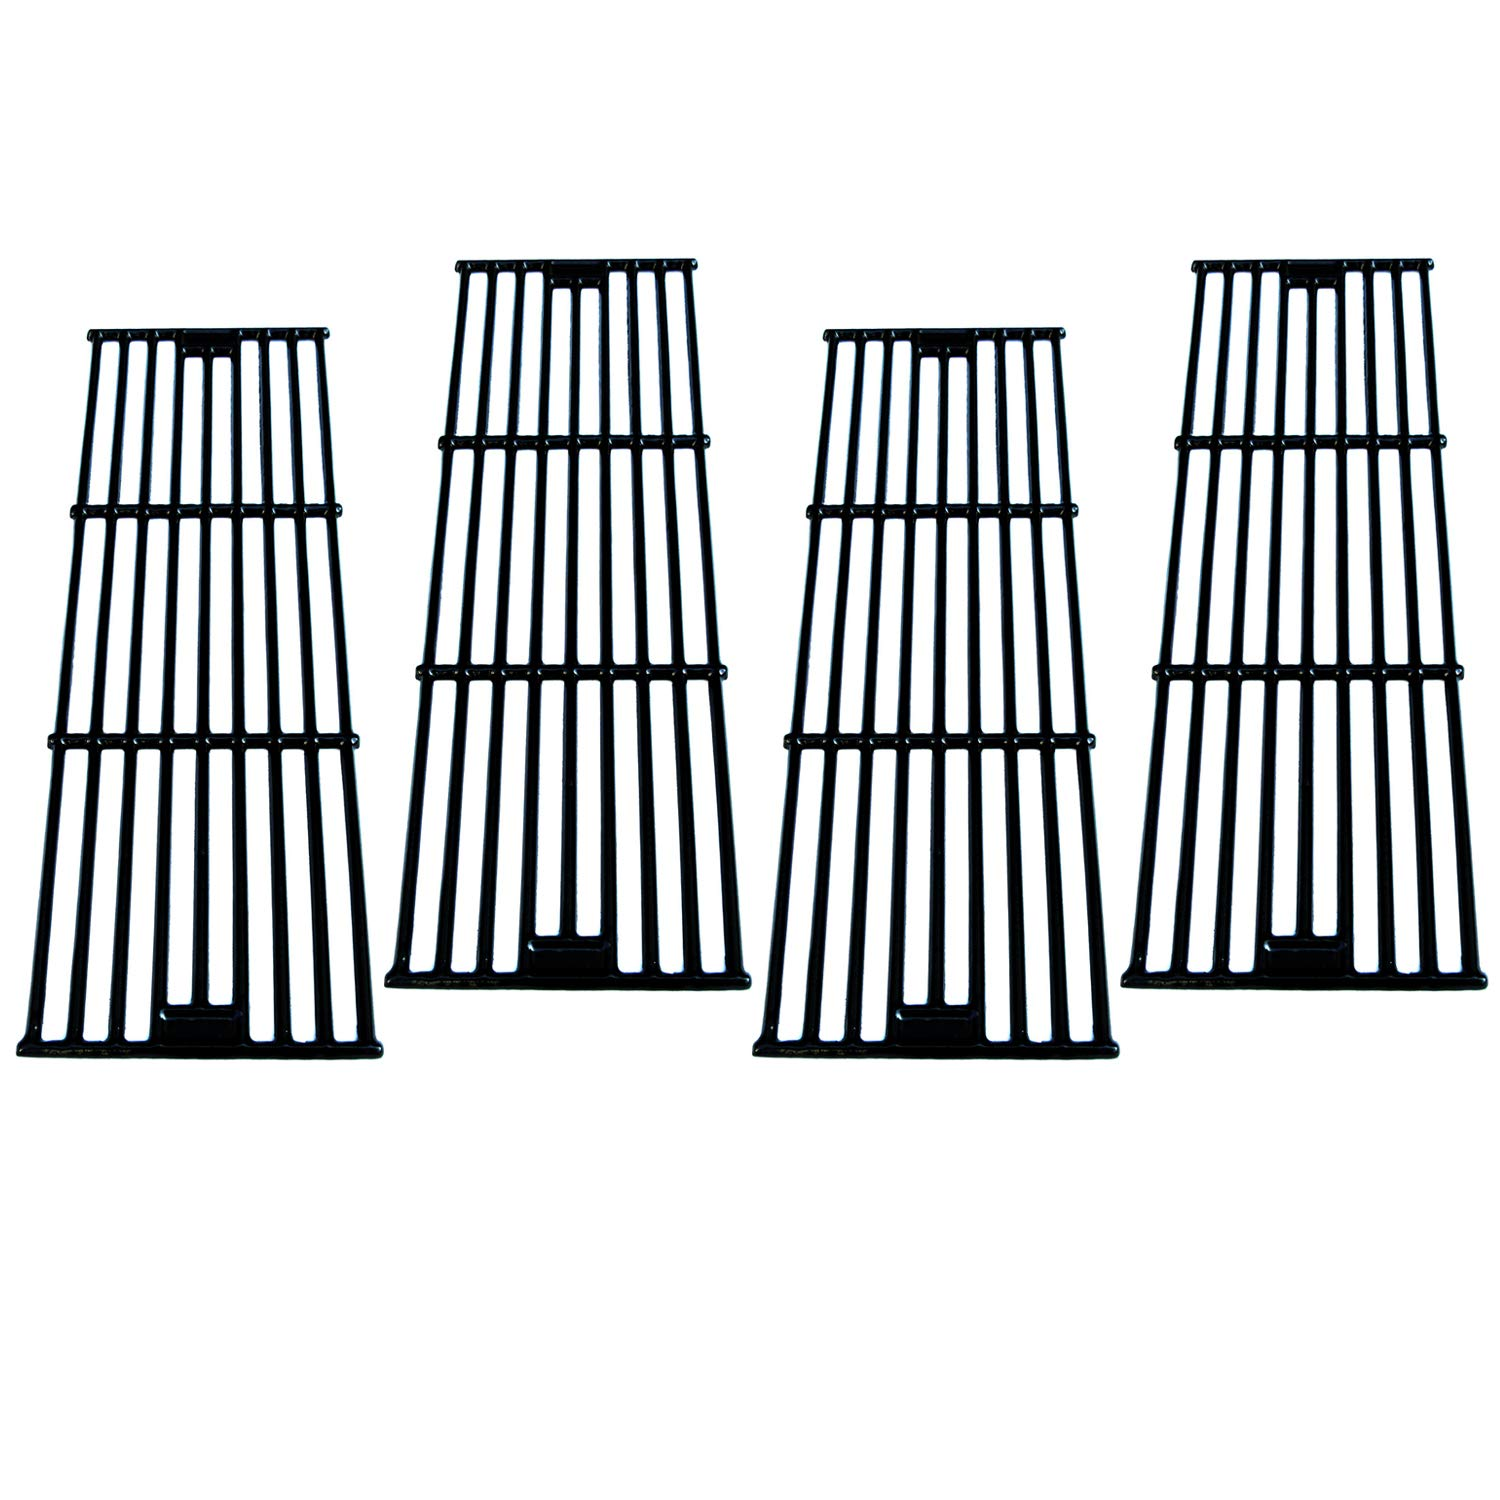 Direct store Parts DC114 (4-pack) Porcelain Cast Iron Cooking grid Replacement Chargriller, King Griller Gas Grill (4)